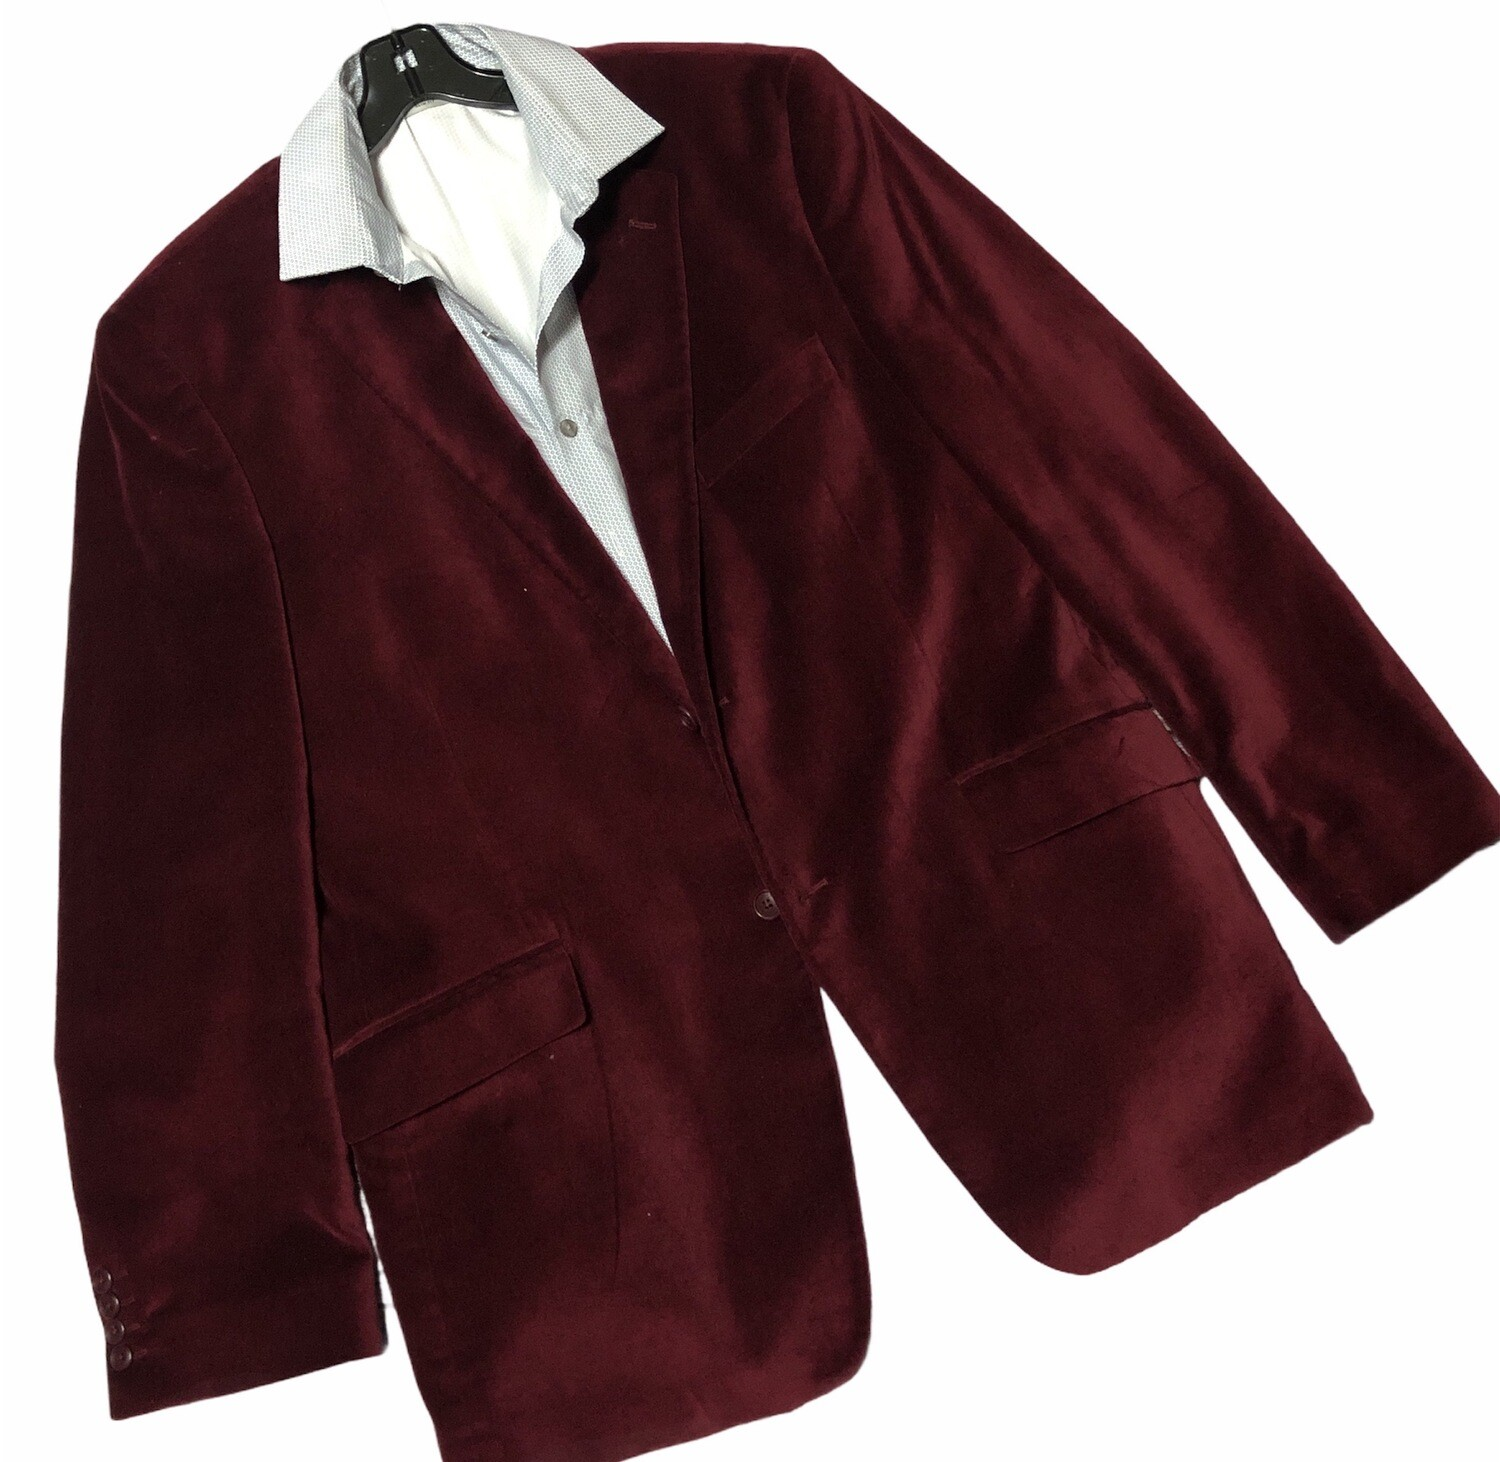 Mens MADISON Burgundy Velvet 2-Button Double Vent Sport Coat 44L